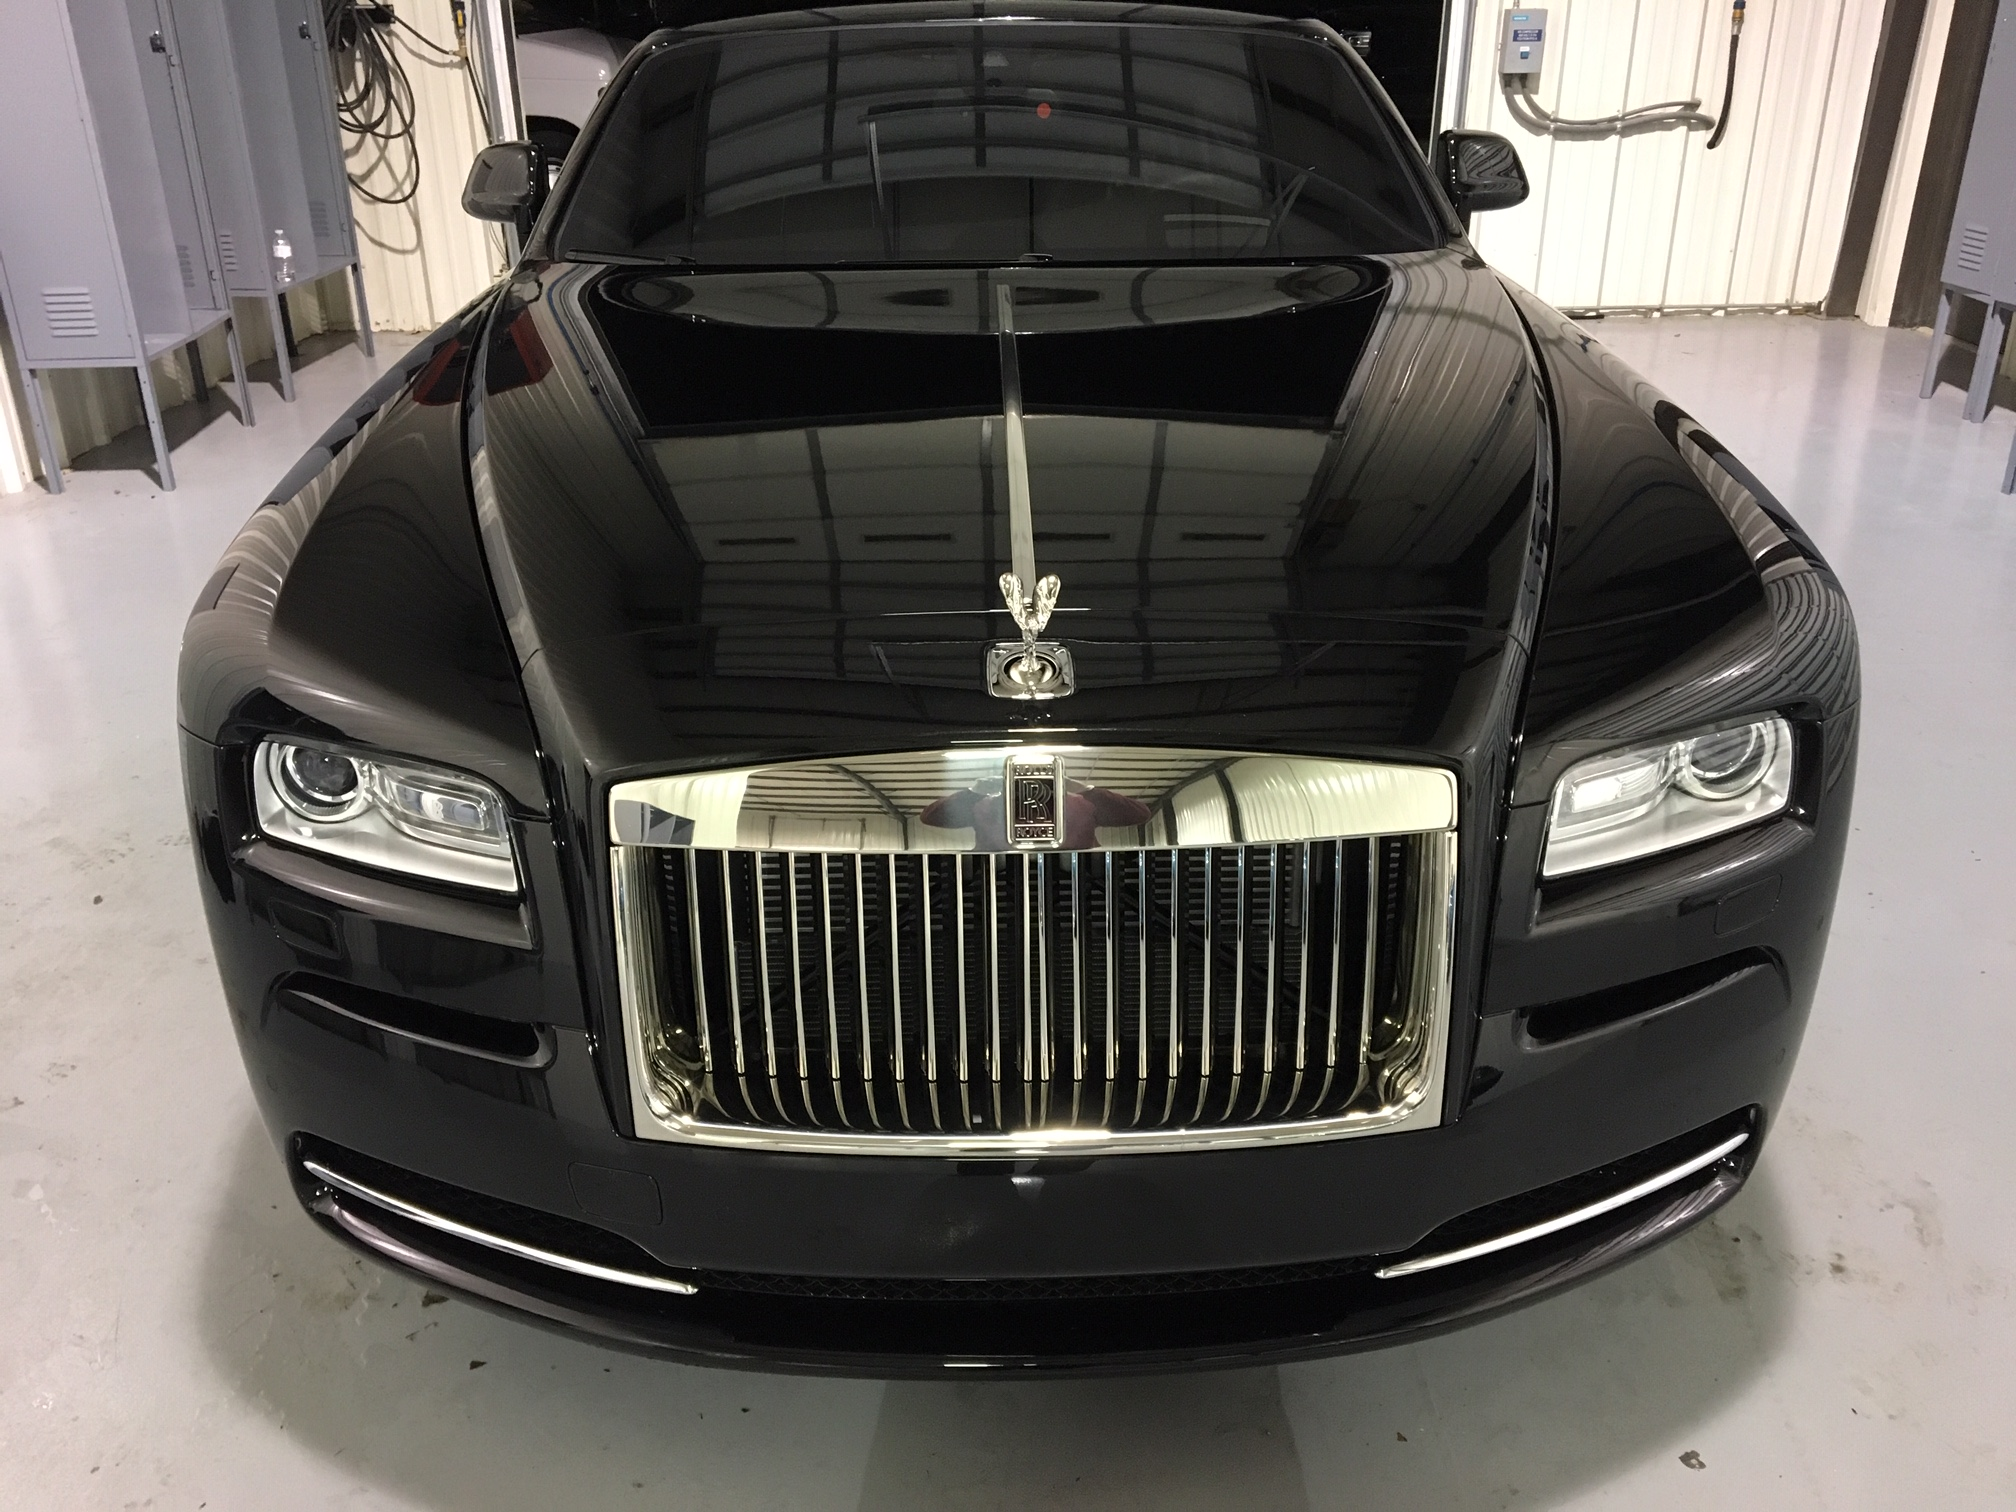 Full Detail of a 2016 Rolls Royce Phantom